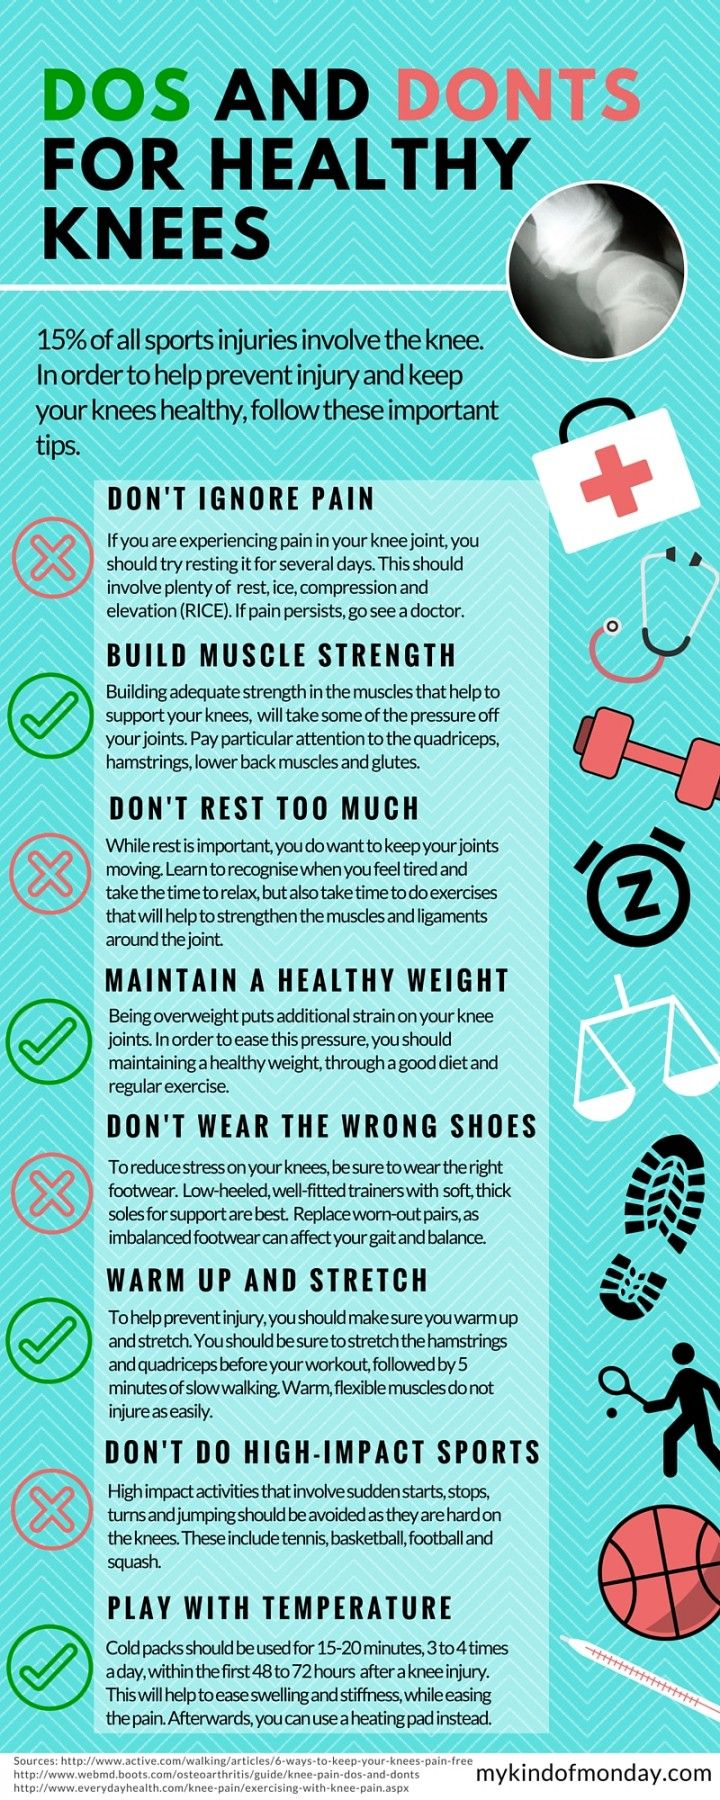 Do's and Don'ts for supporting healthy knees and joints. #kneepain, #healthyknees, #glucosamine